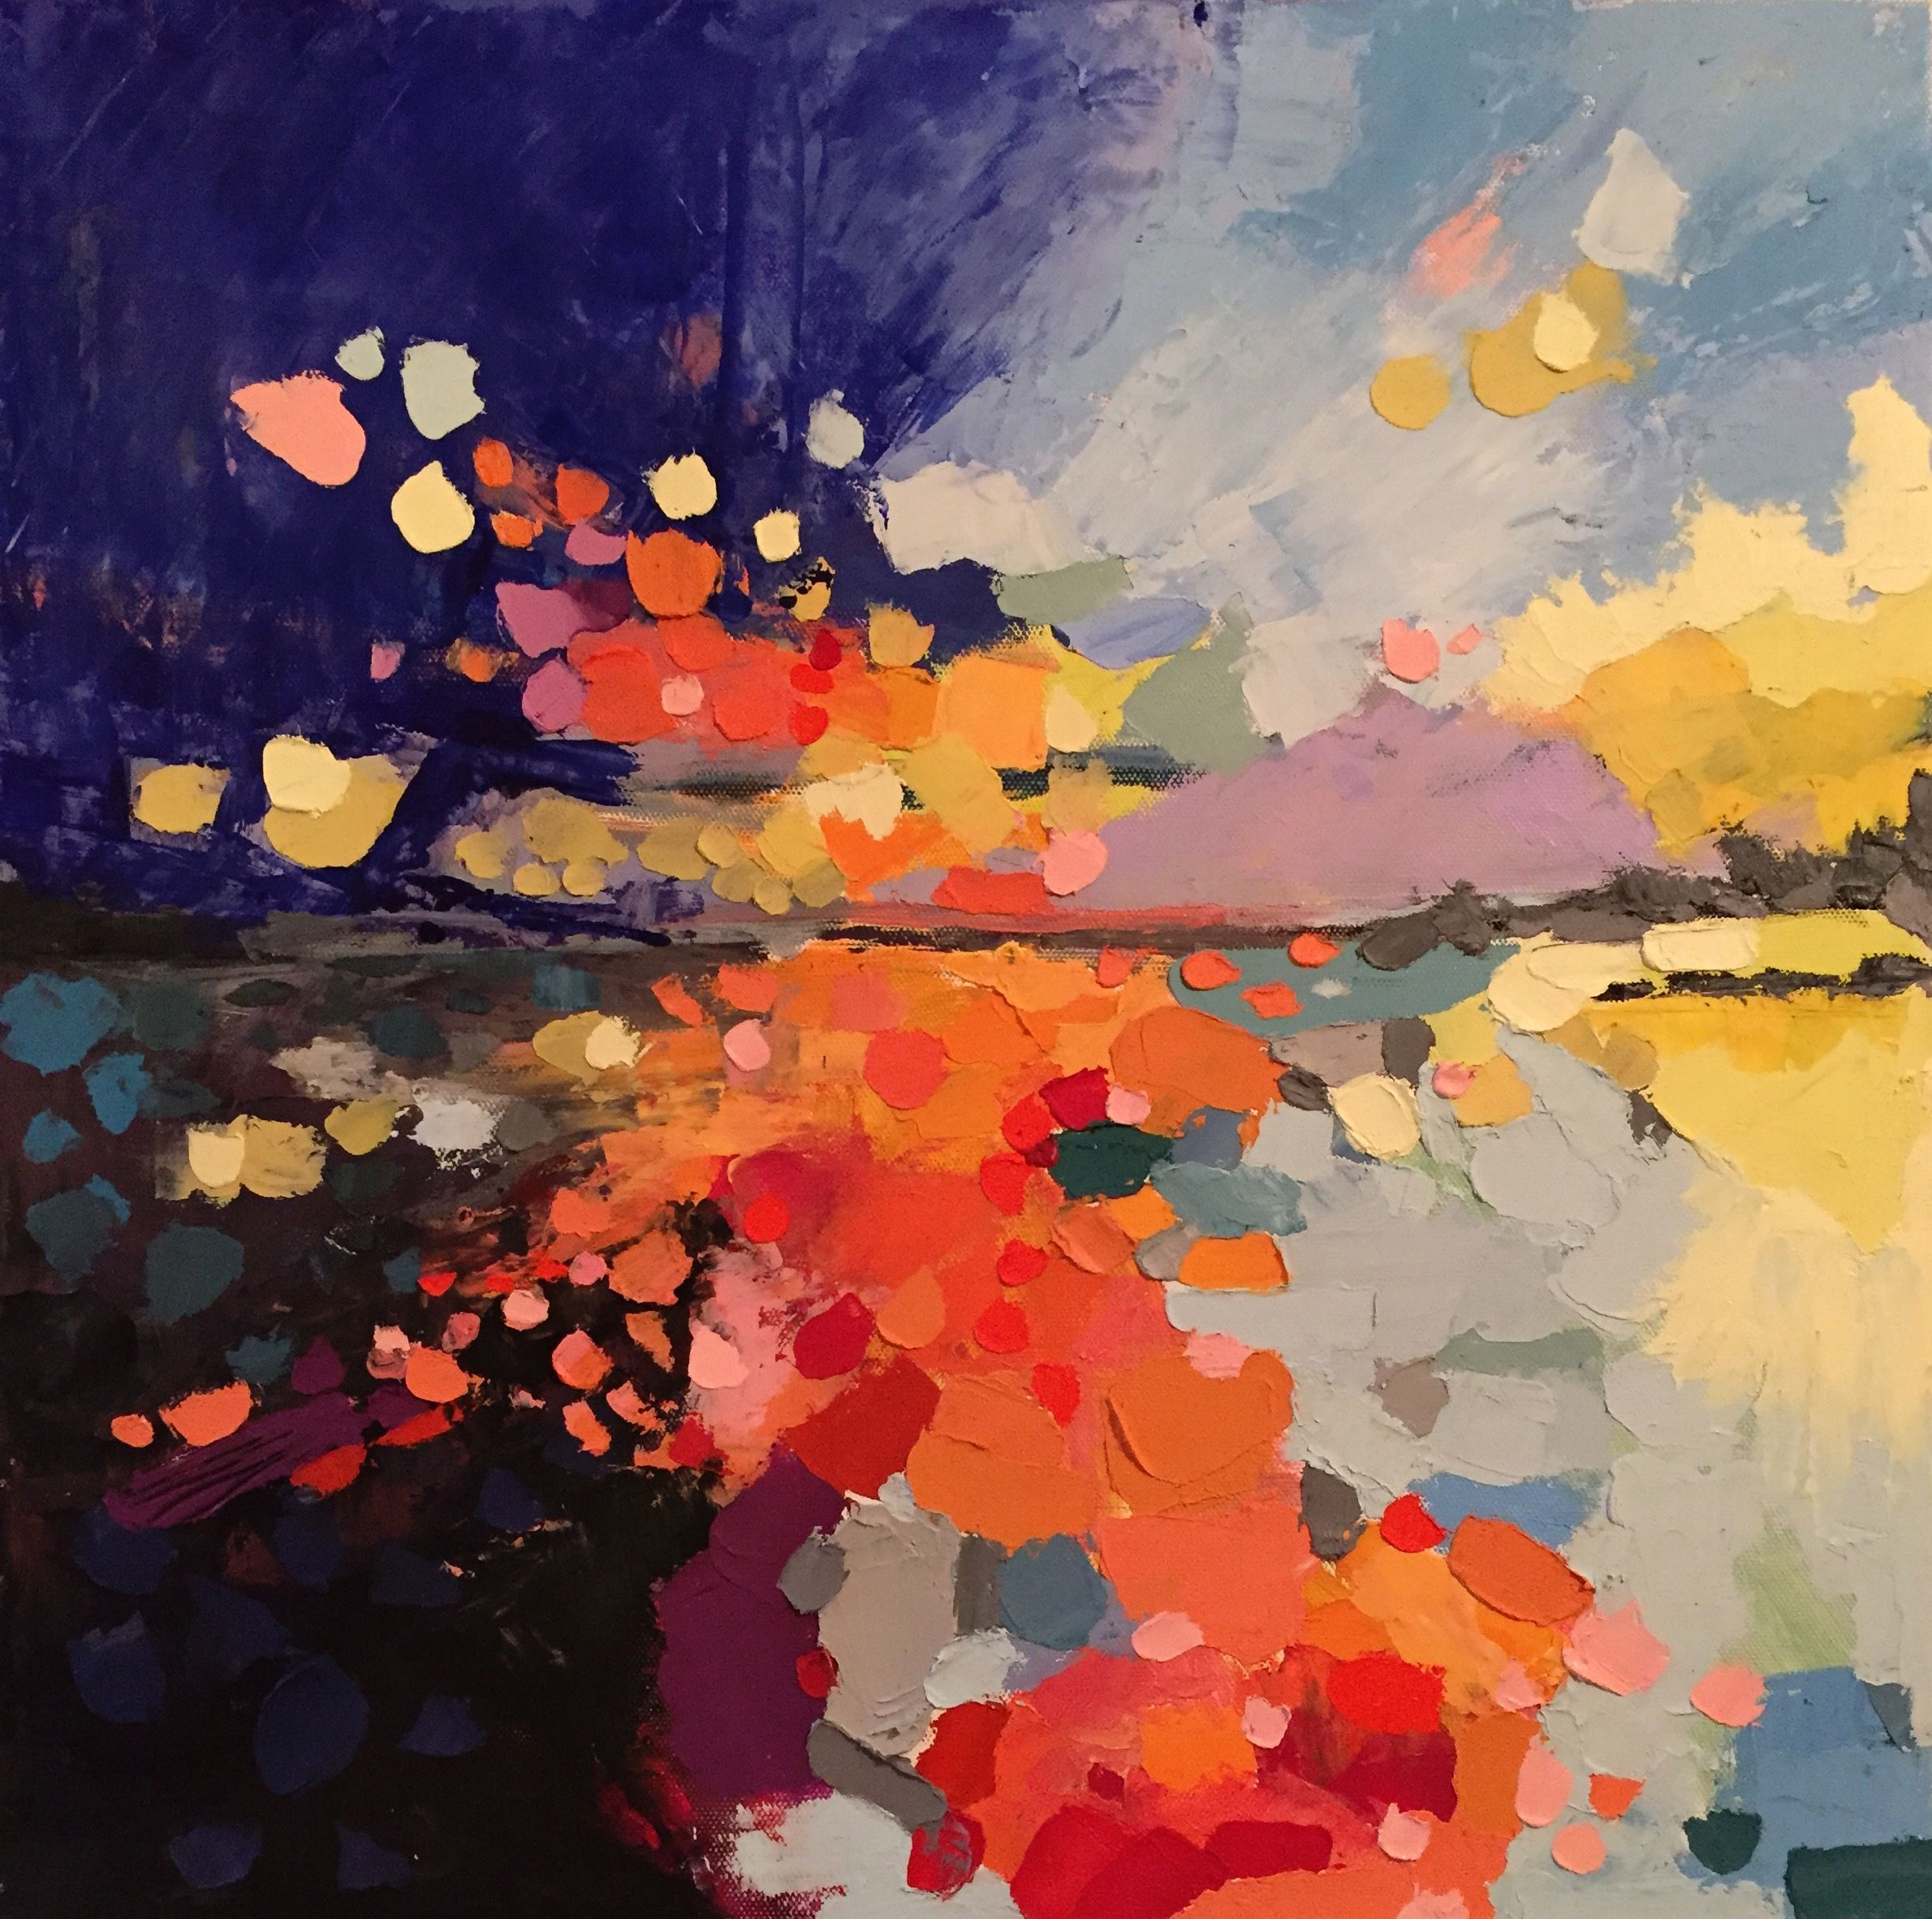 Joanna Posey Art Abstract Landscape Oil On Canvas Art Painting Abstract Art